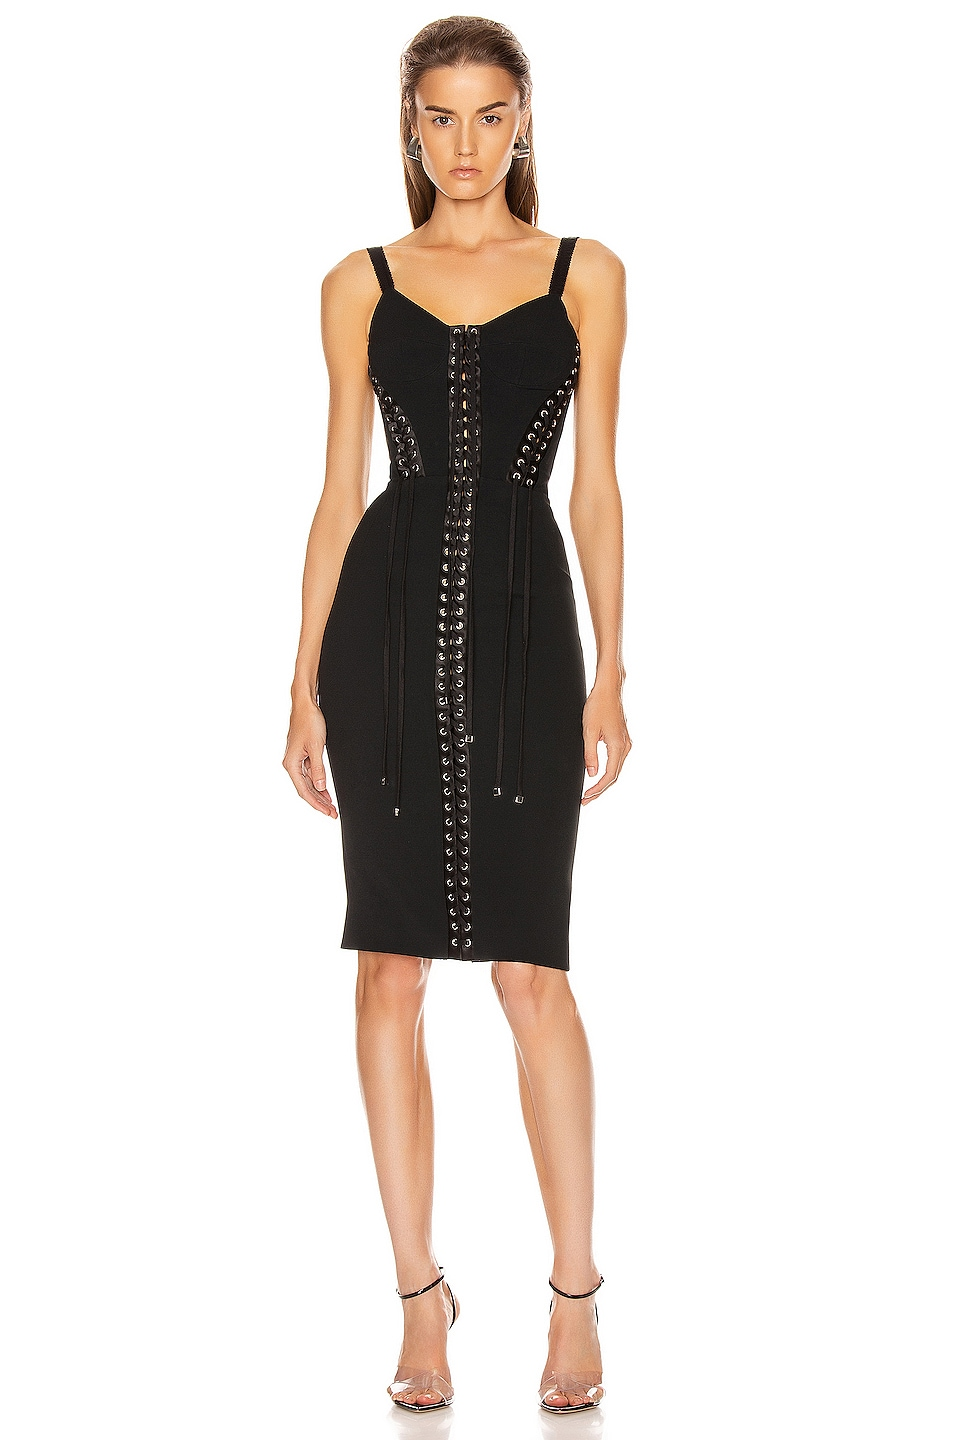 Image 1 of Dolce & Gabbana Bodycon Dress in Black